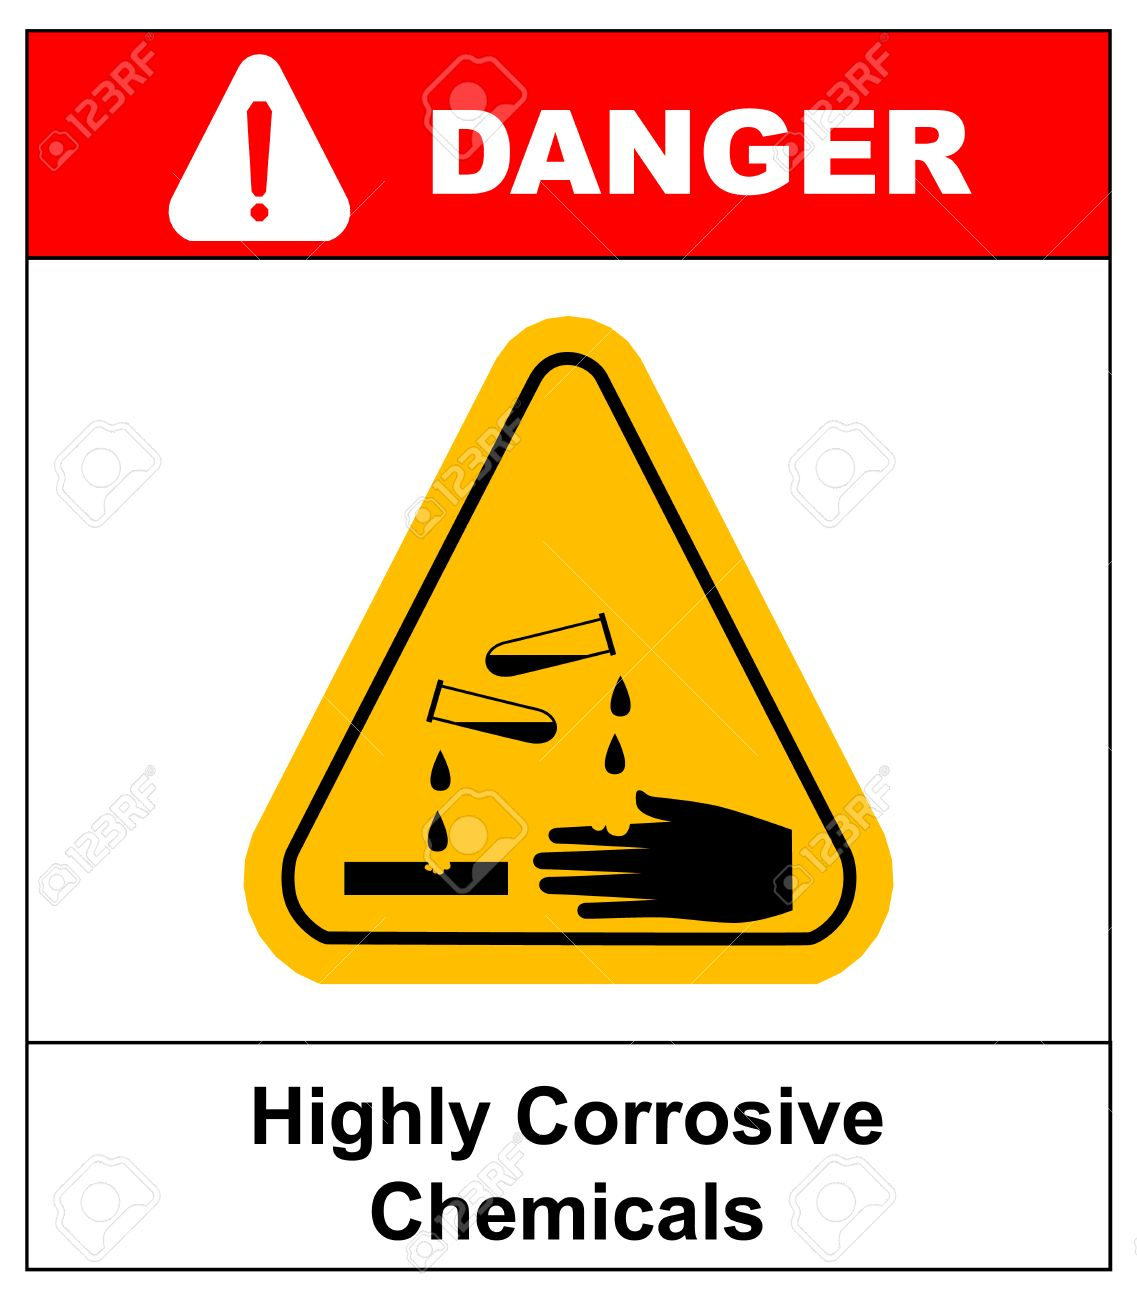 Highly Corrosive Chemicals Sign In Yellow Triangle Isolated On